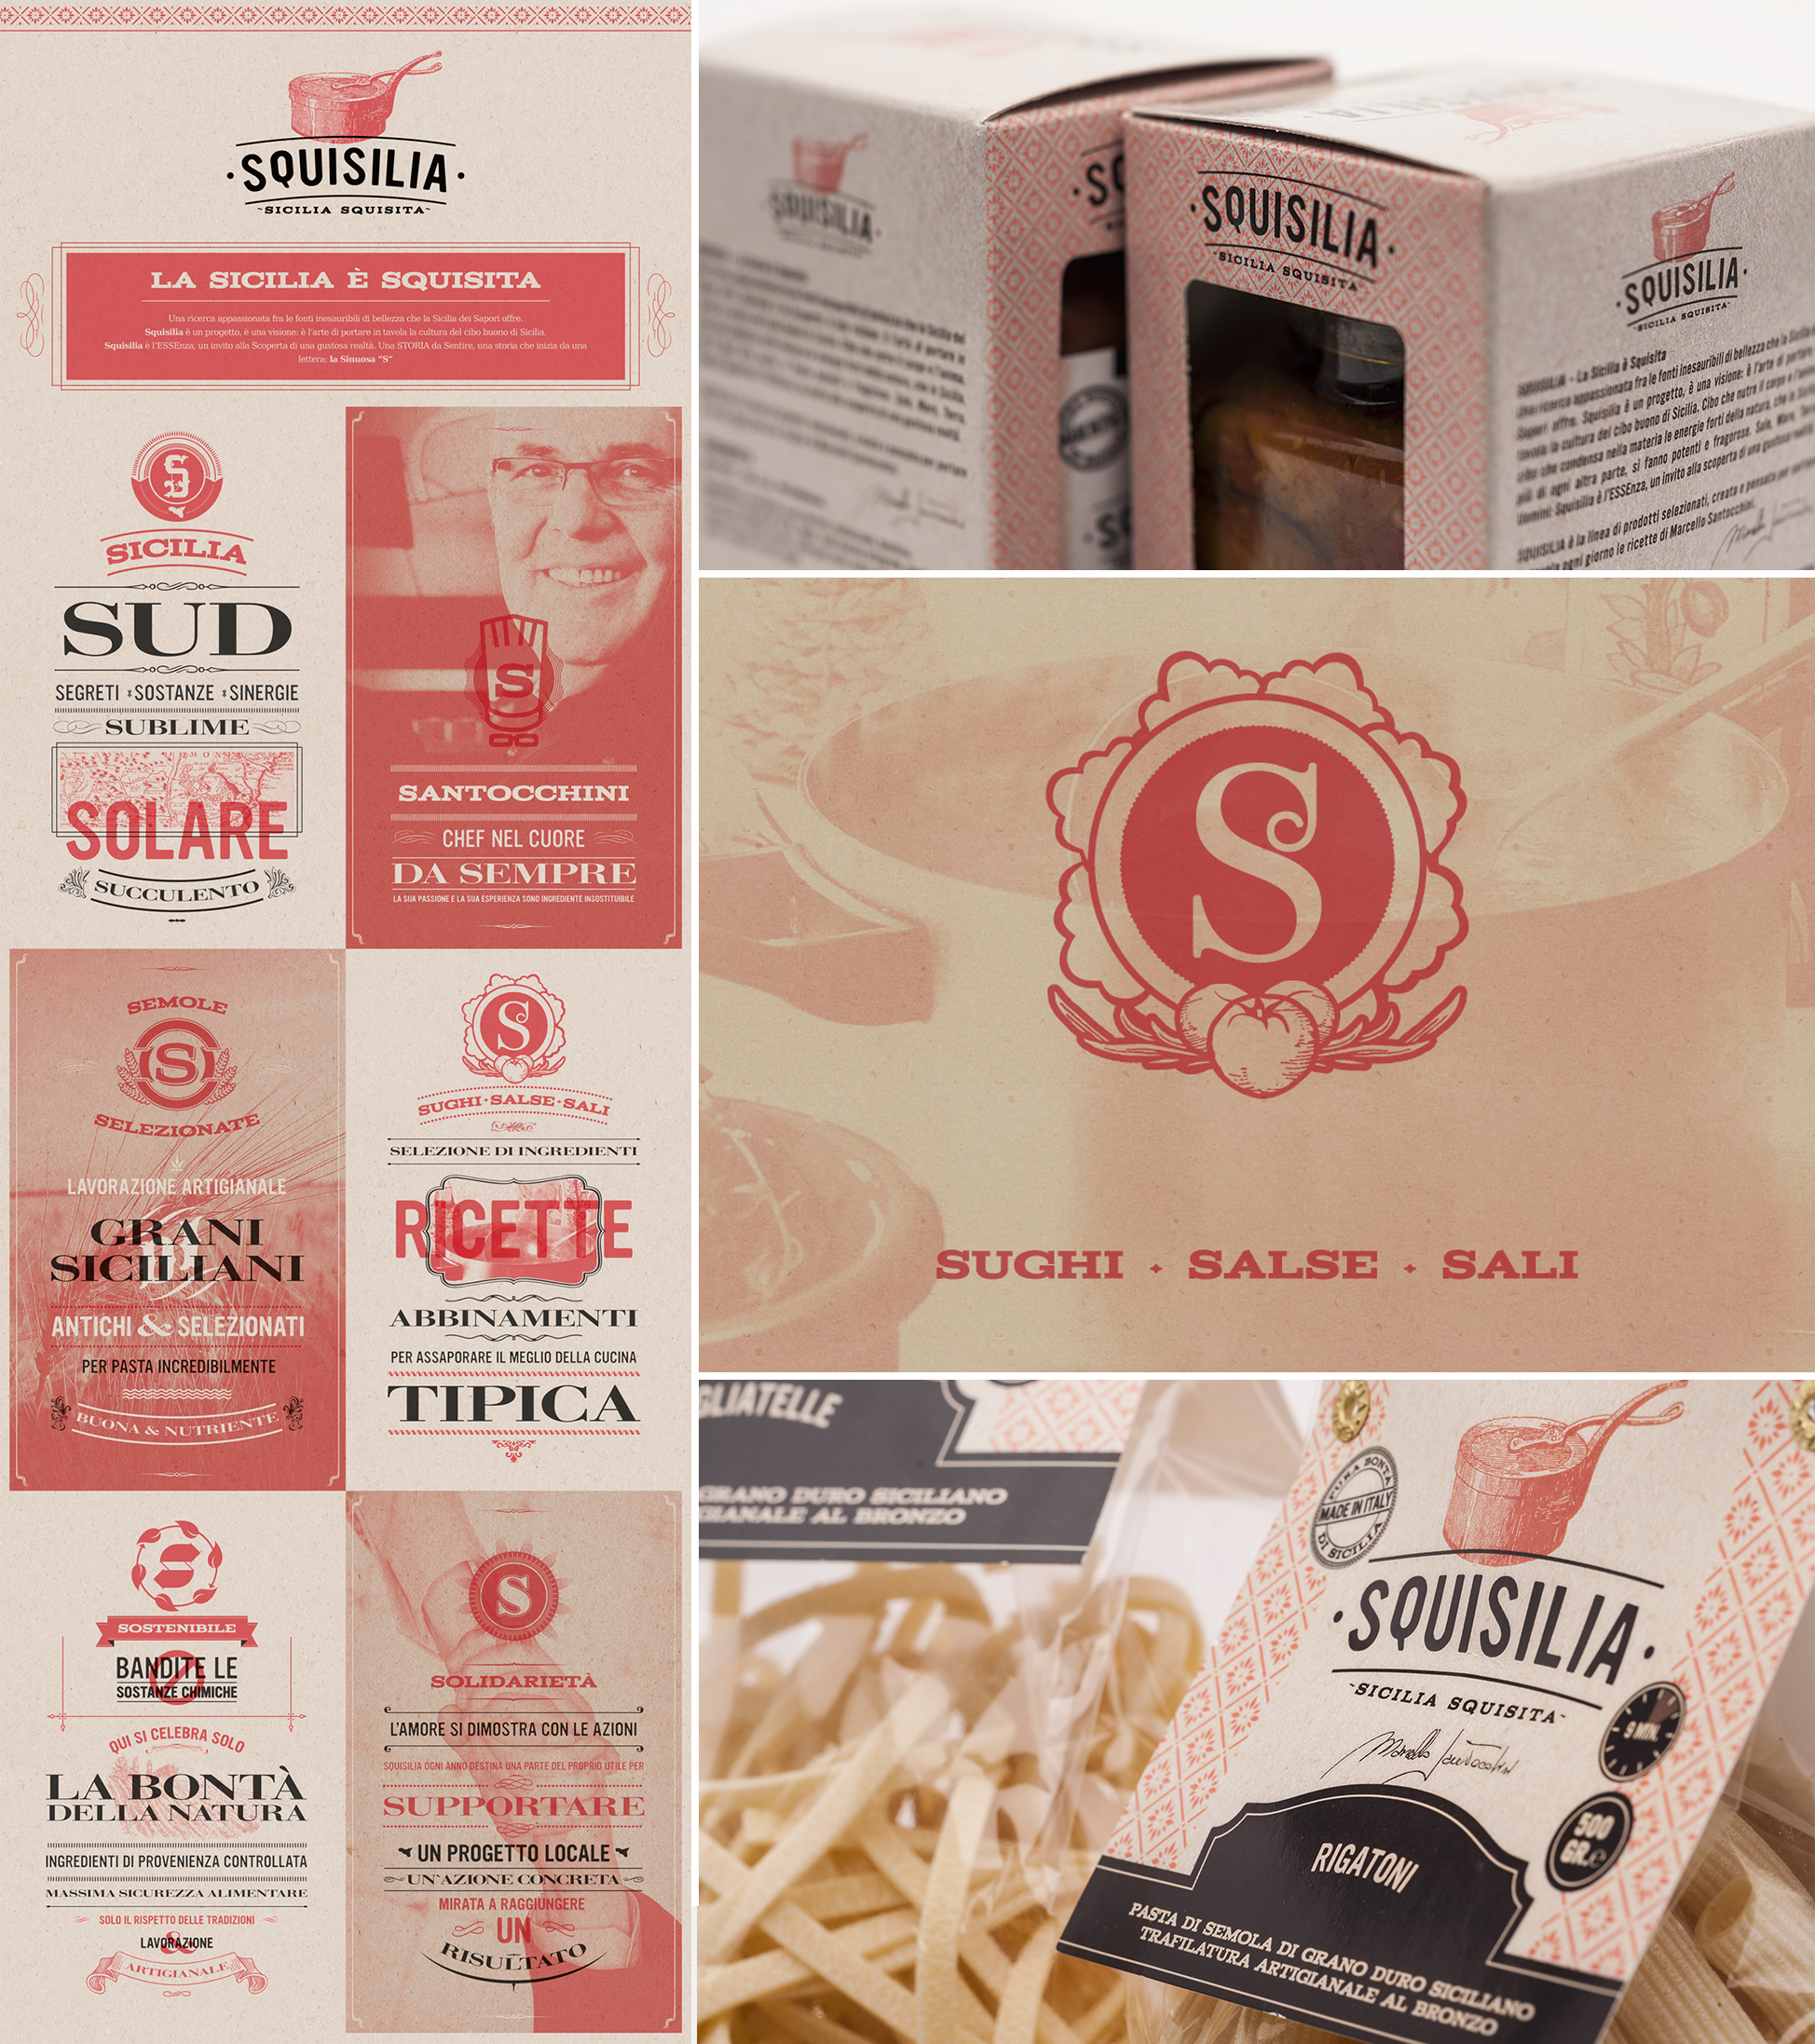 squisilia_pack_2